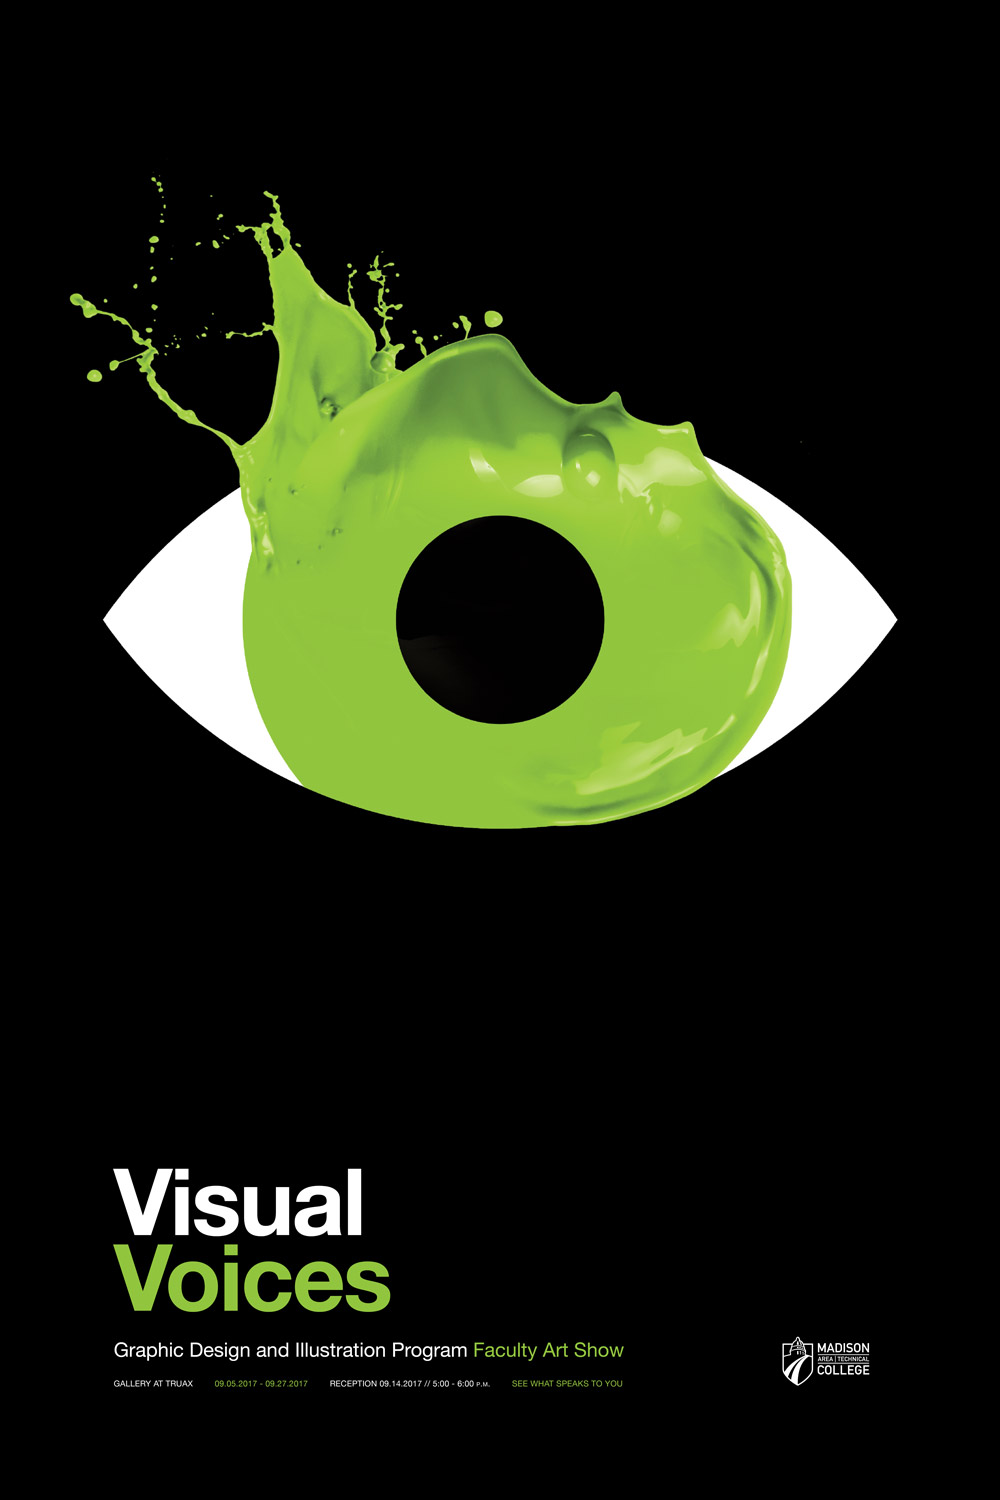 Visual Voices Poster - Green